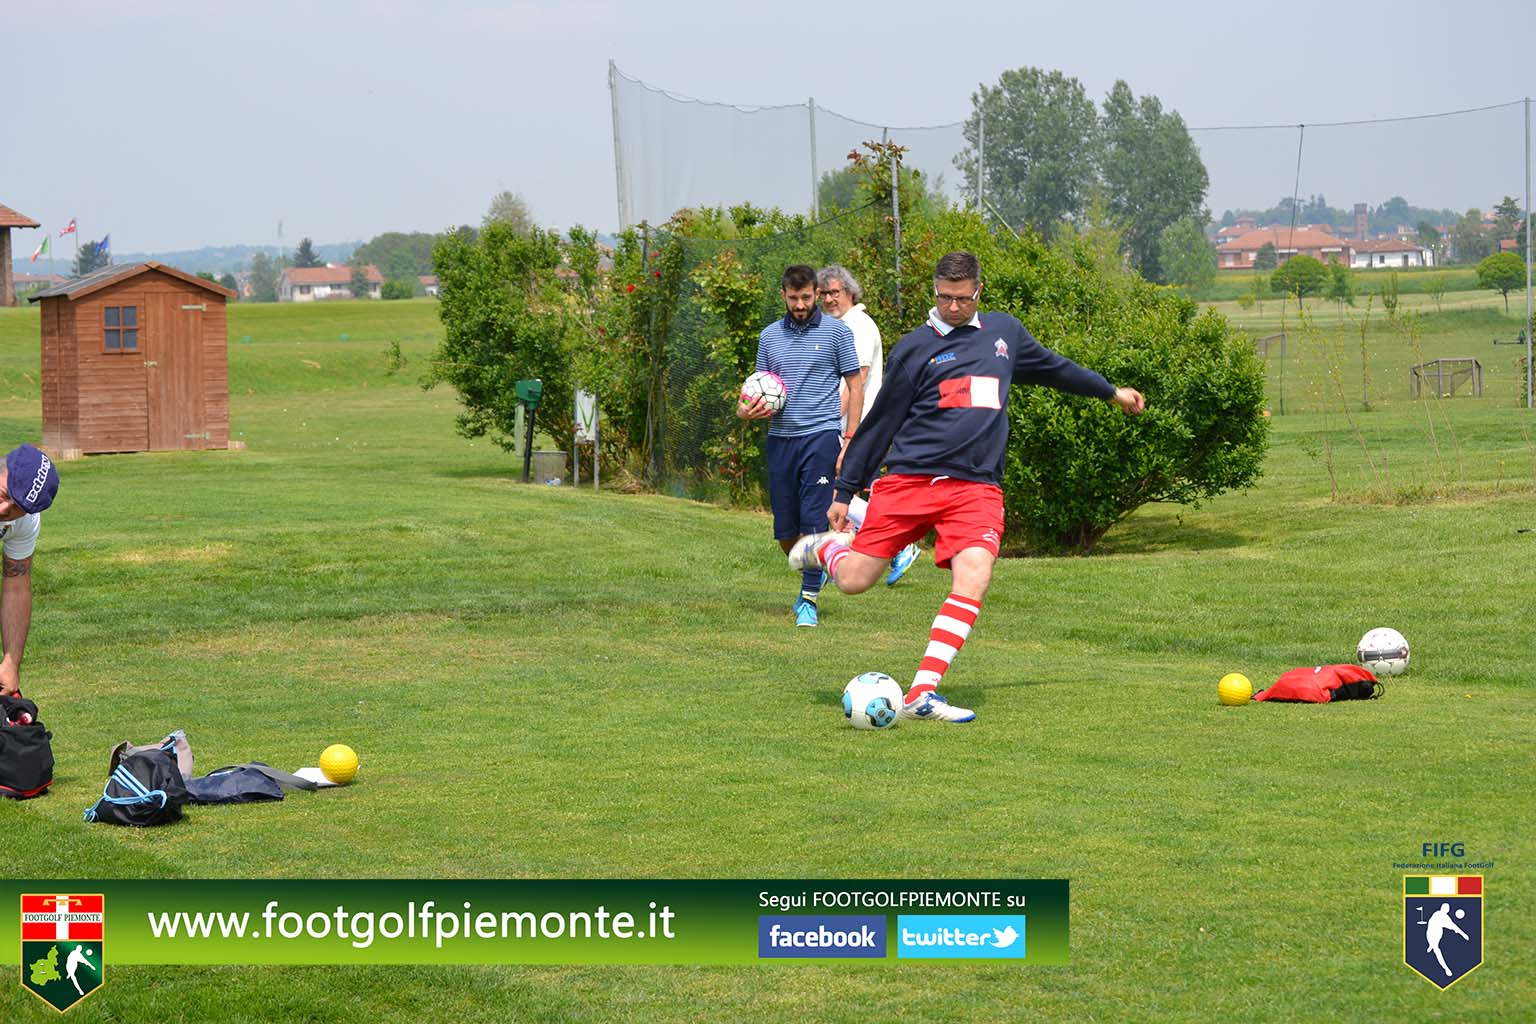 FOTO 9 Regions' Cup Footgolf Piemonte 2016 Golf Città di Asti (At) 30apr16-28